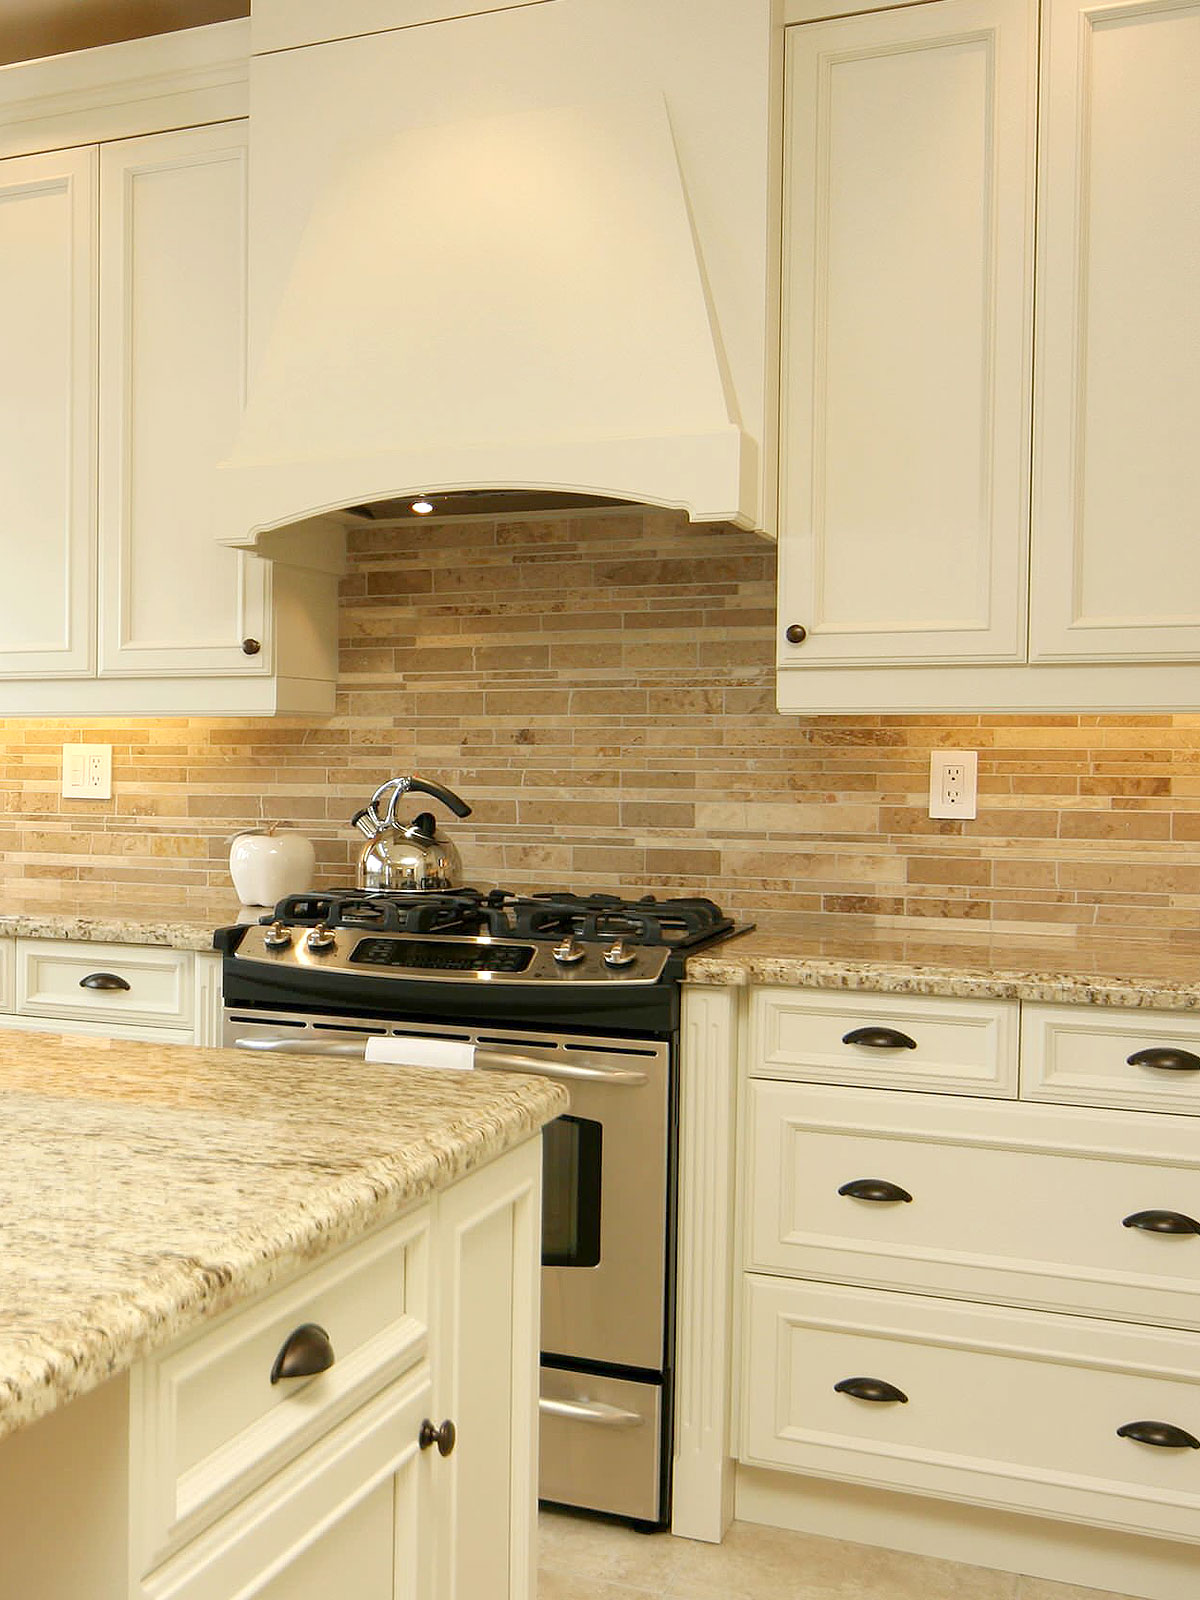 - 103+ Travertine Backsplash Ideas (Top Trend Tile Designs!)